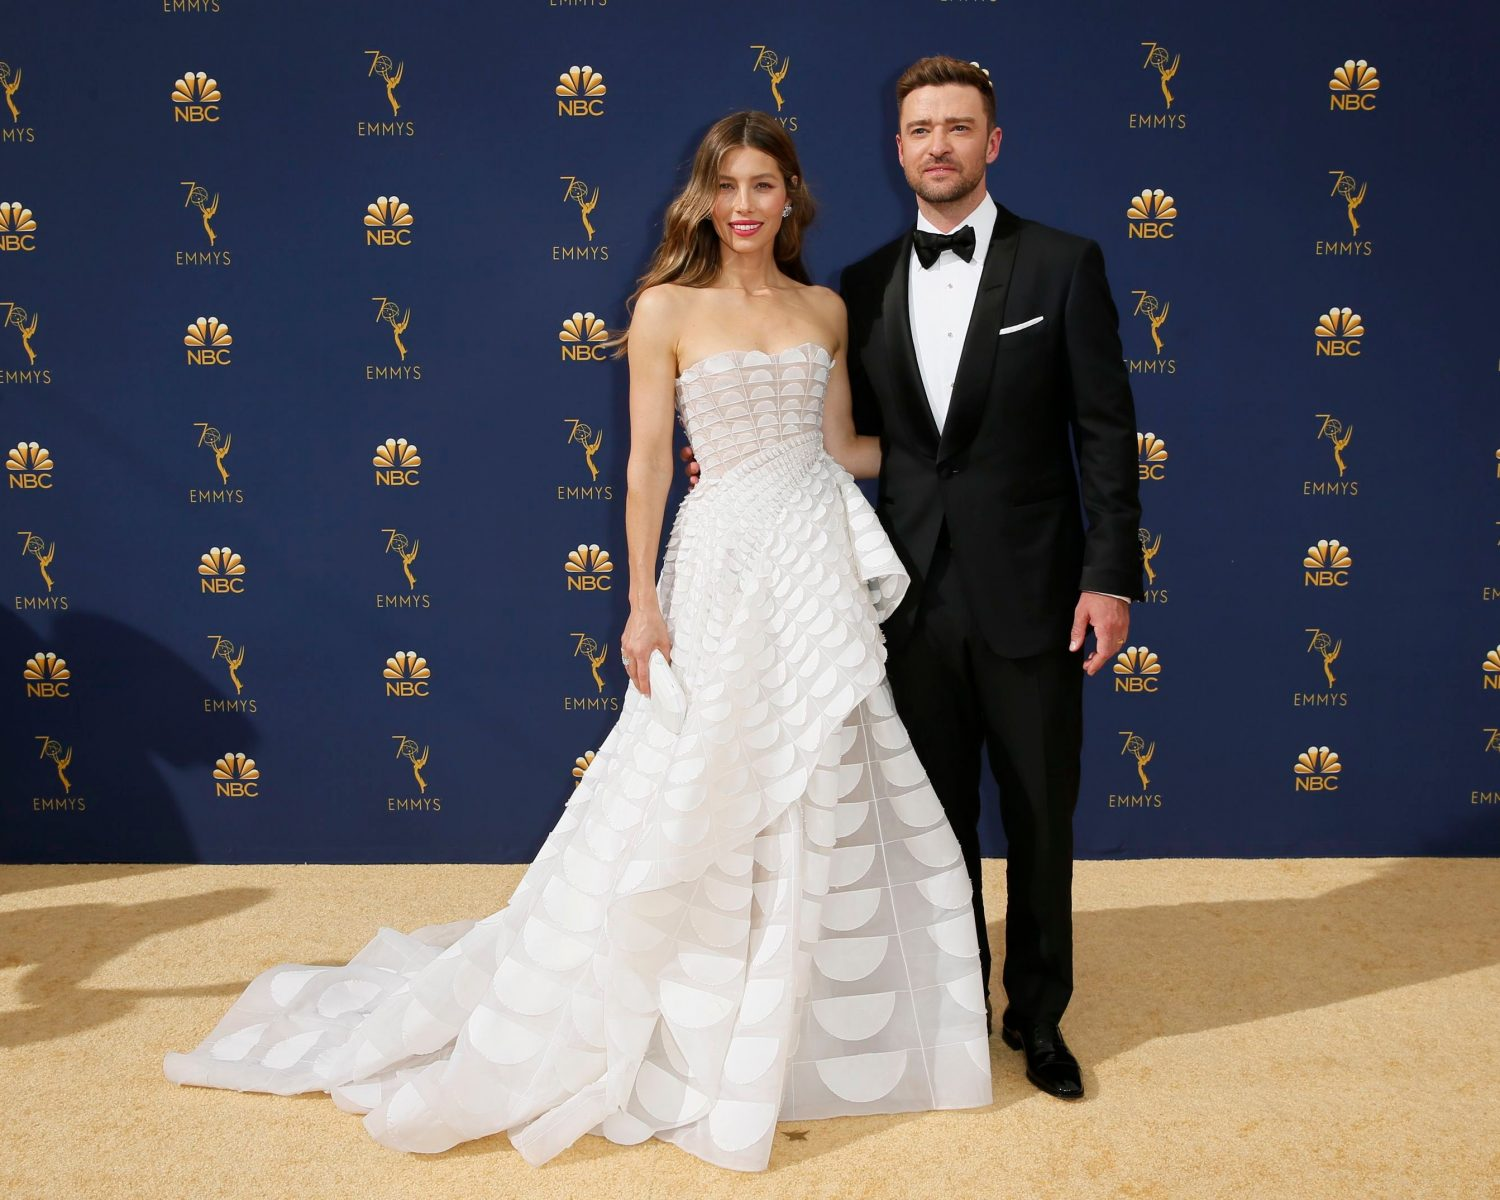 Justin Timberlake Wedding.Jessica Biel And Justin Timberlake At The 2018 Emmys I Feel Like I